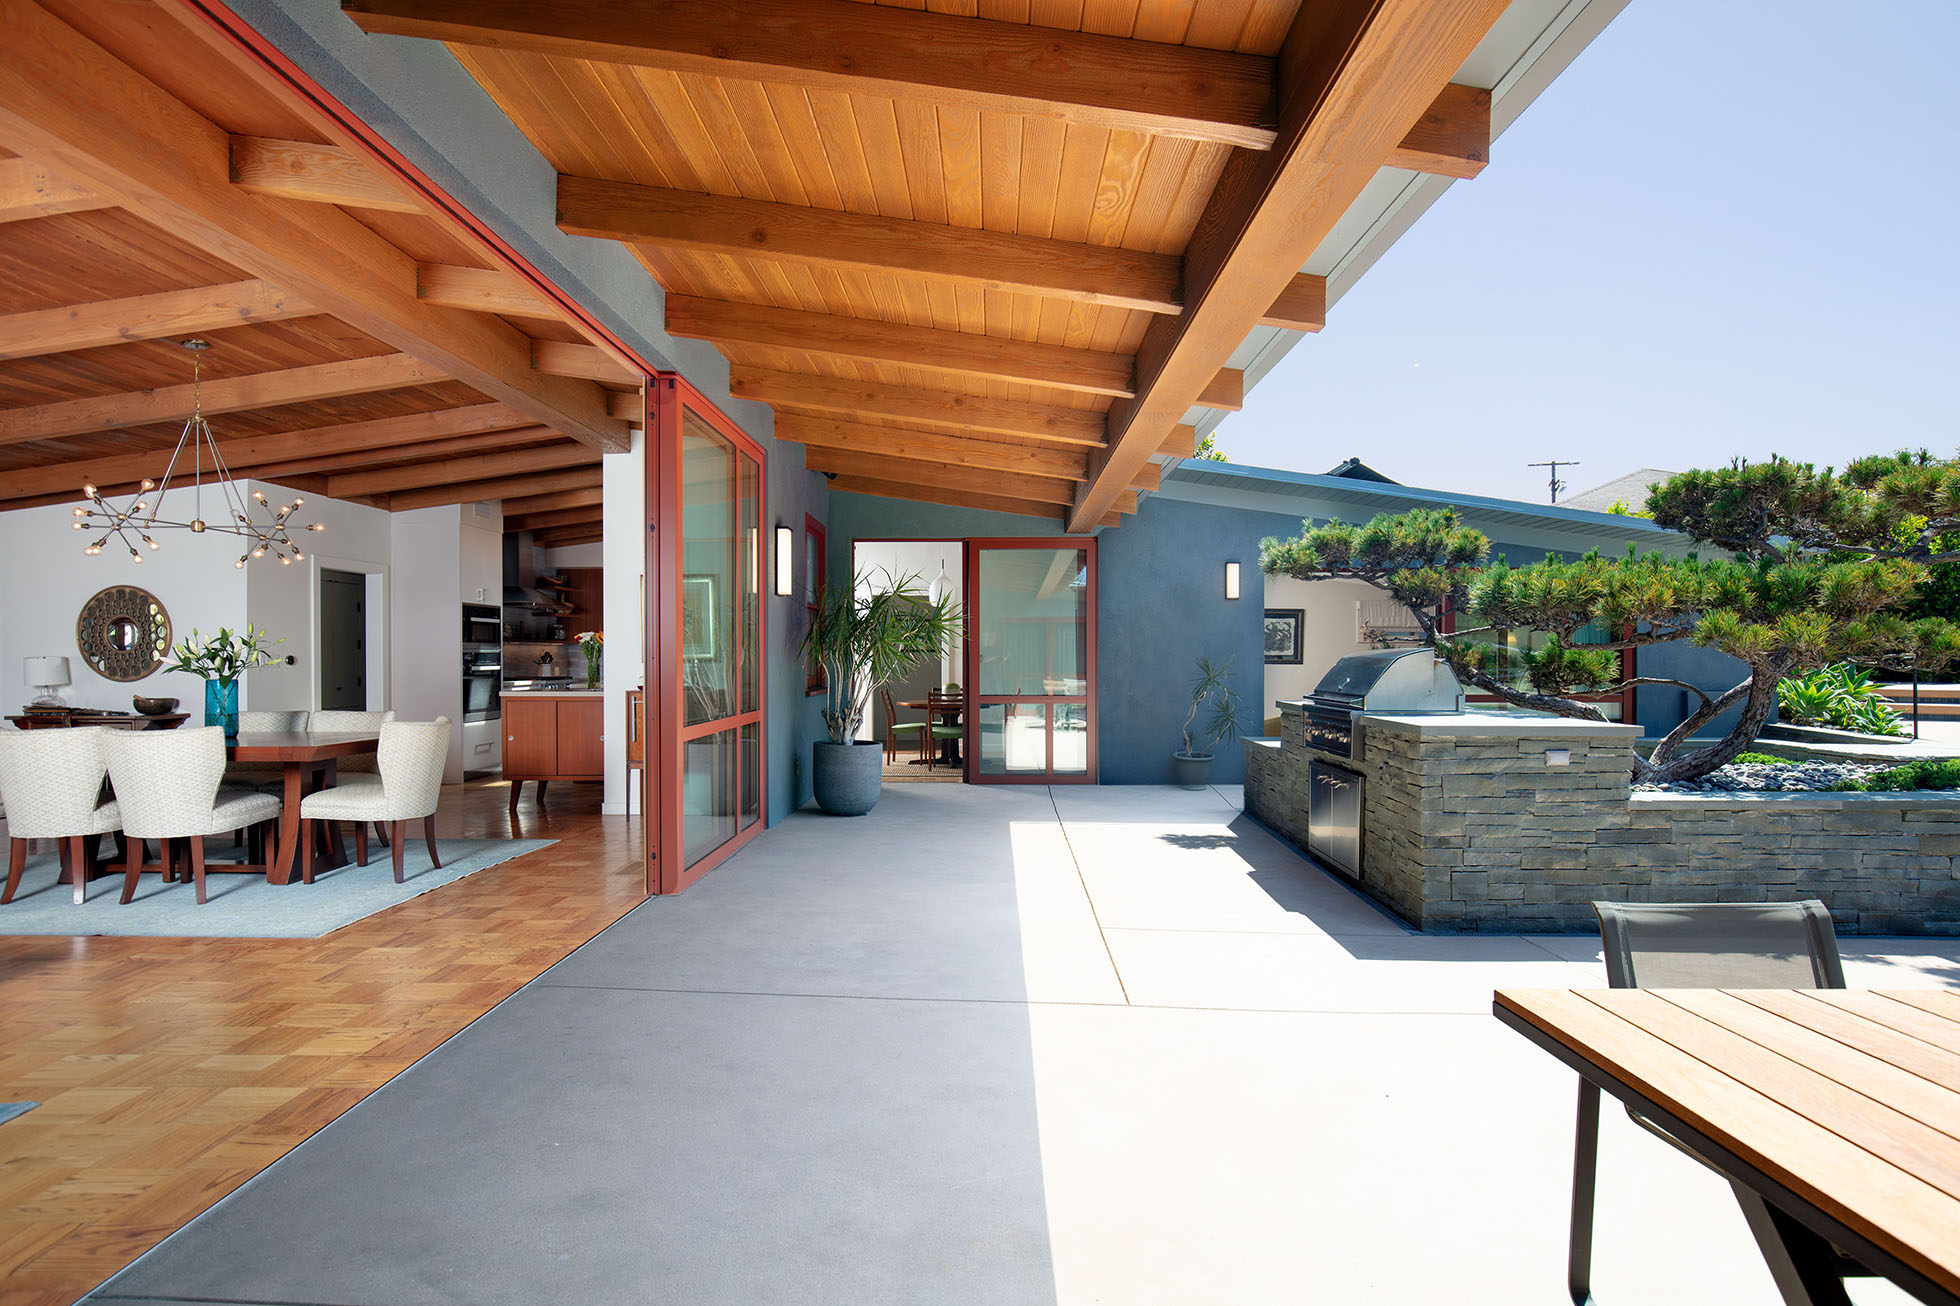 Outdoor entertaining area with sliding door and kitchen